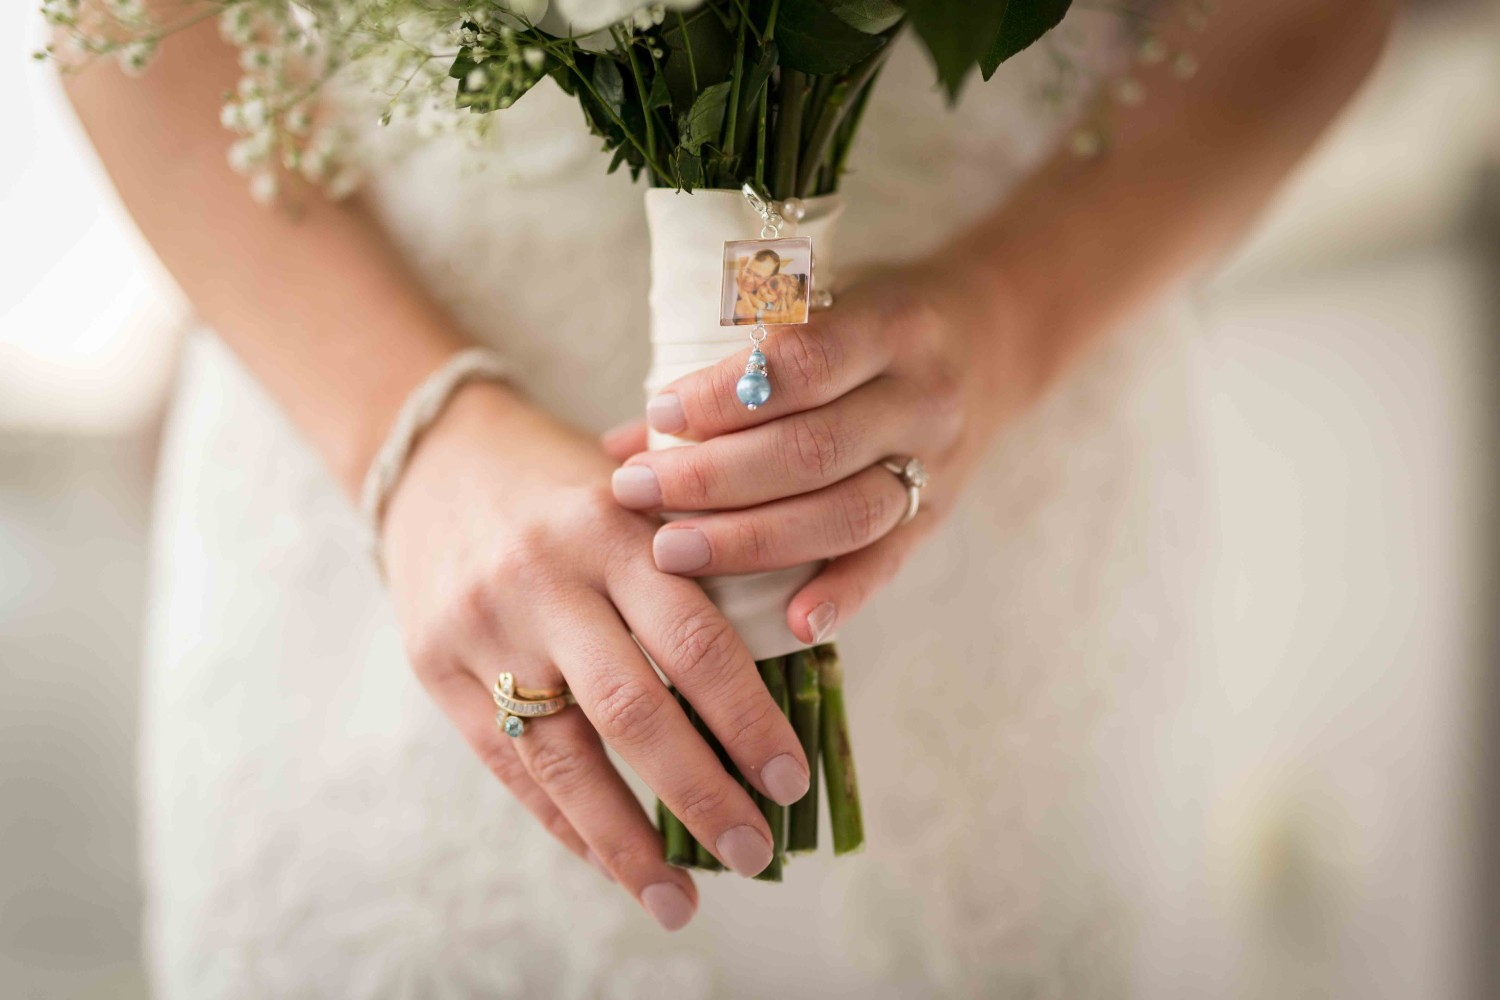 Brides bouquet with rings and details of brides hands